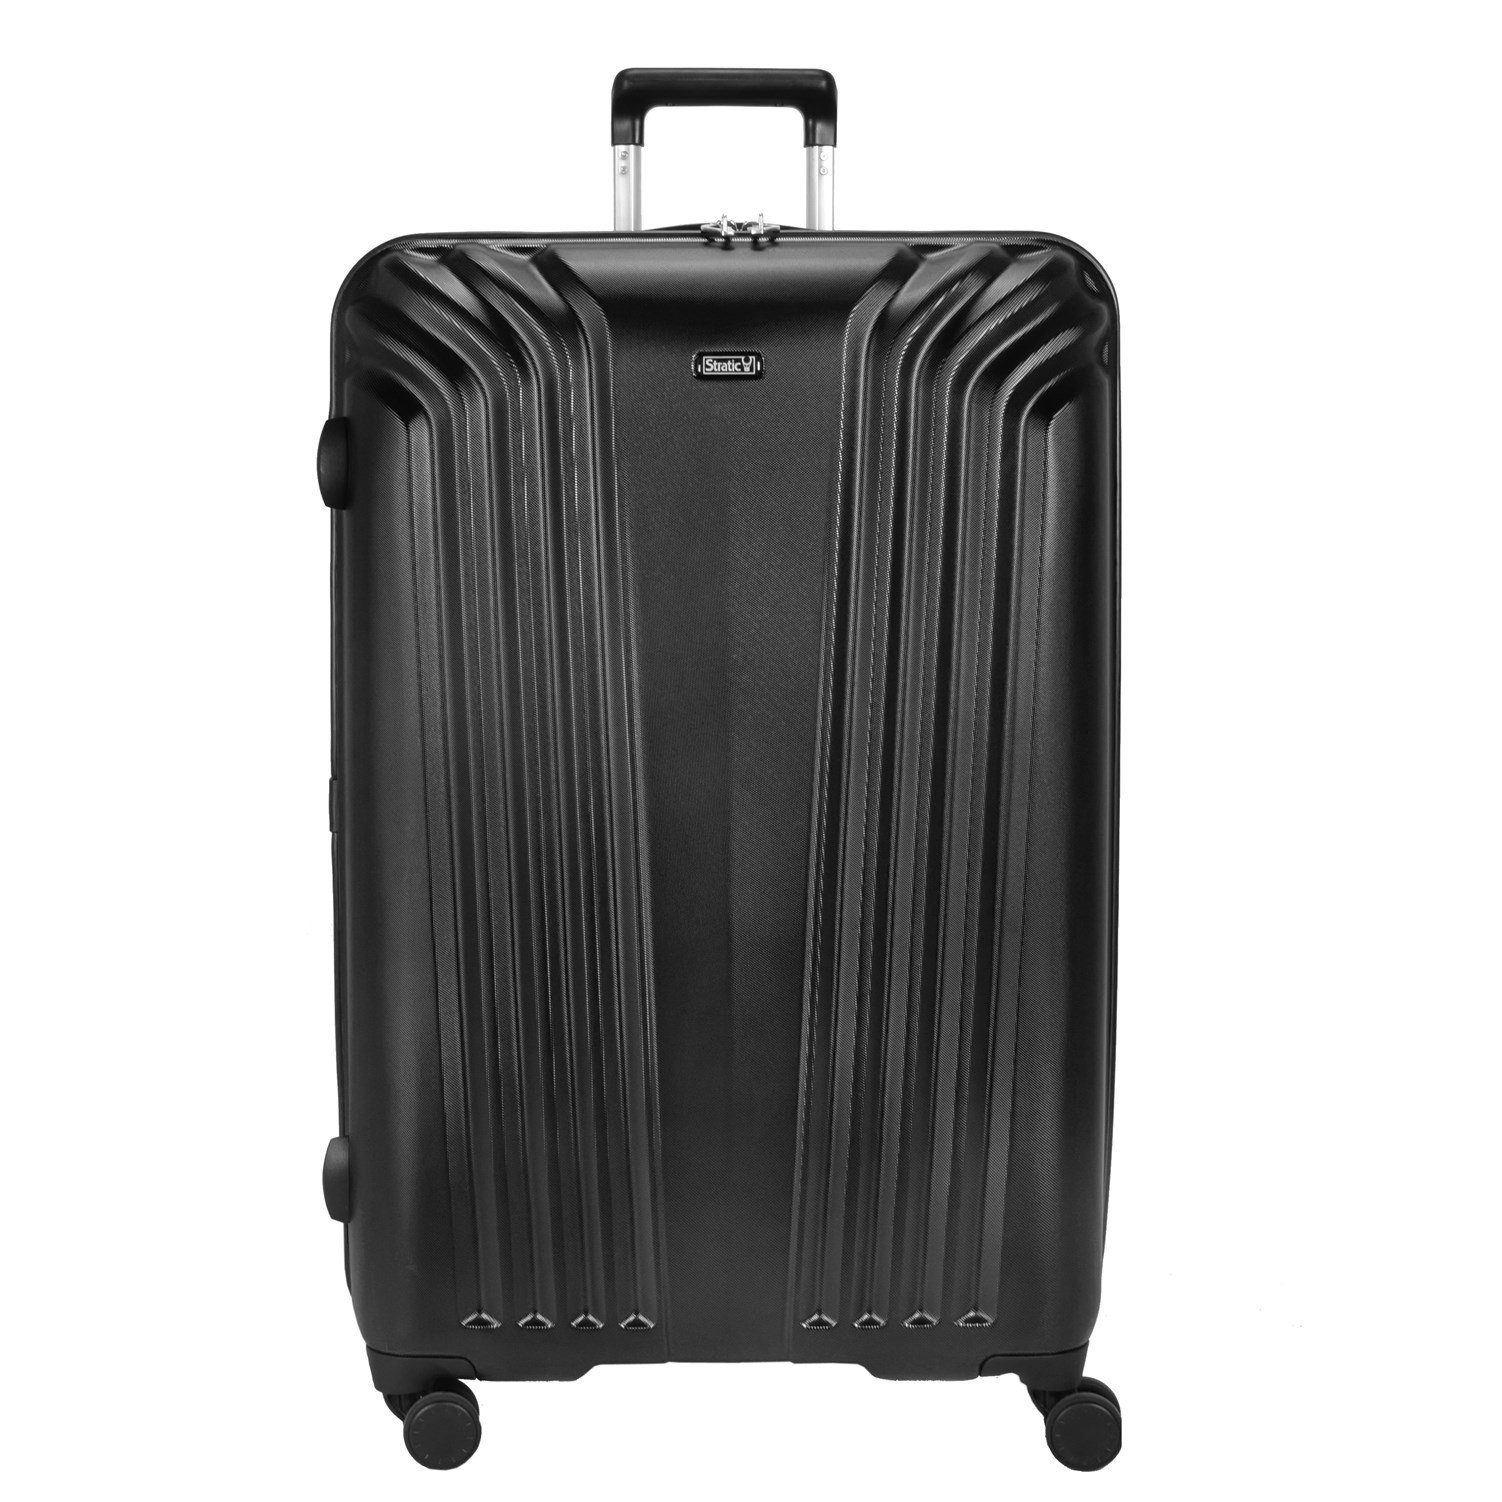 Stratic Cone 4-Rollen Trolley 78 cm